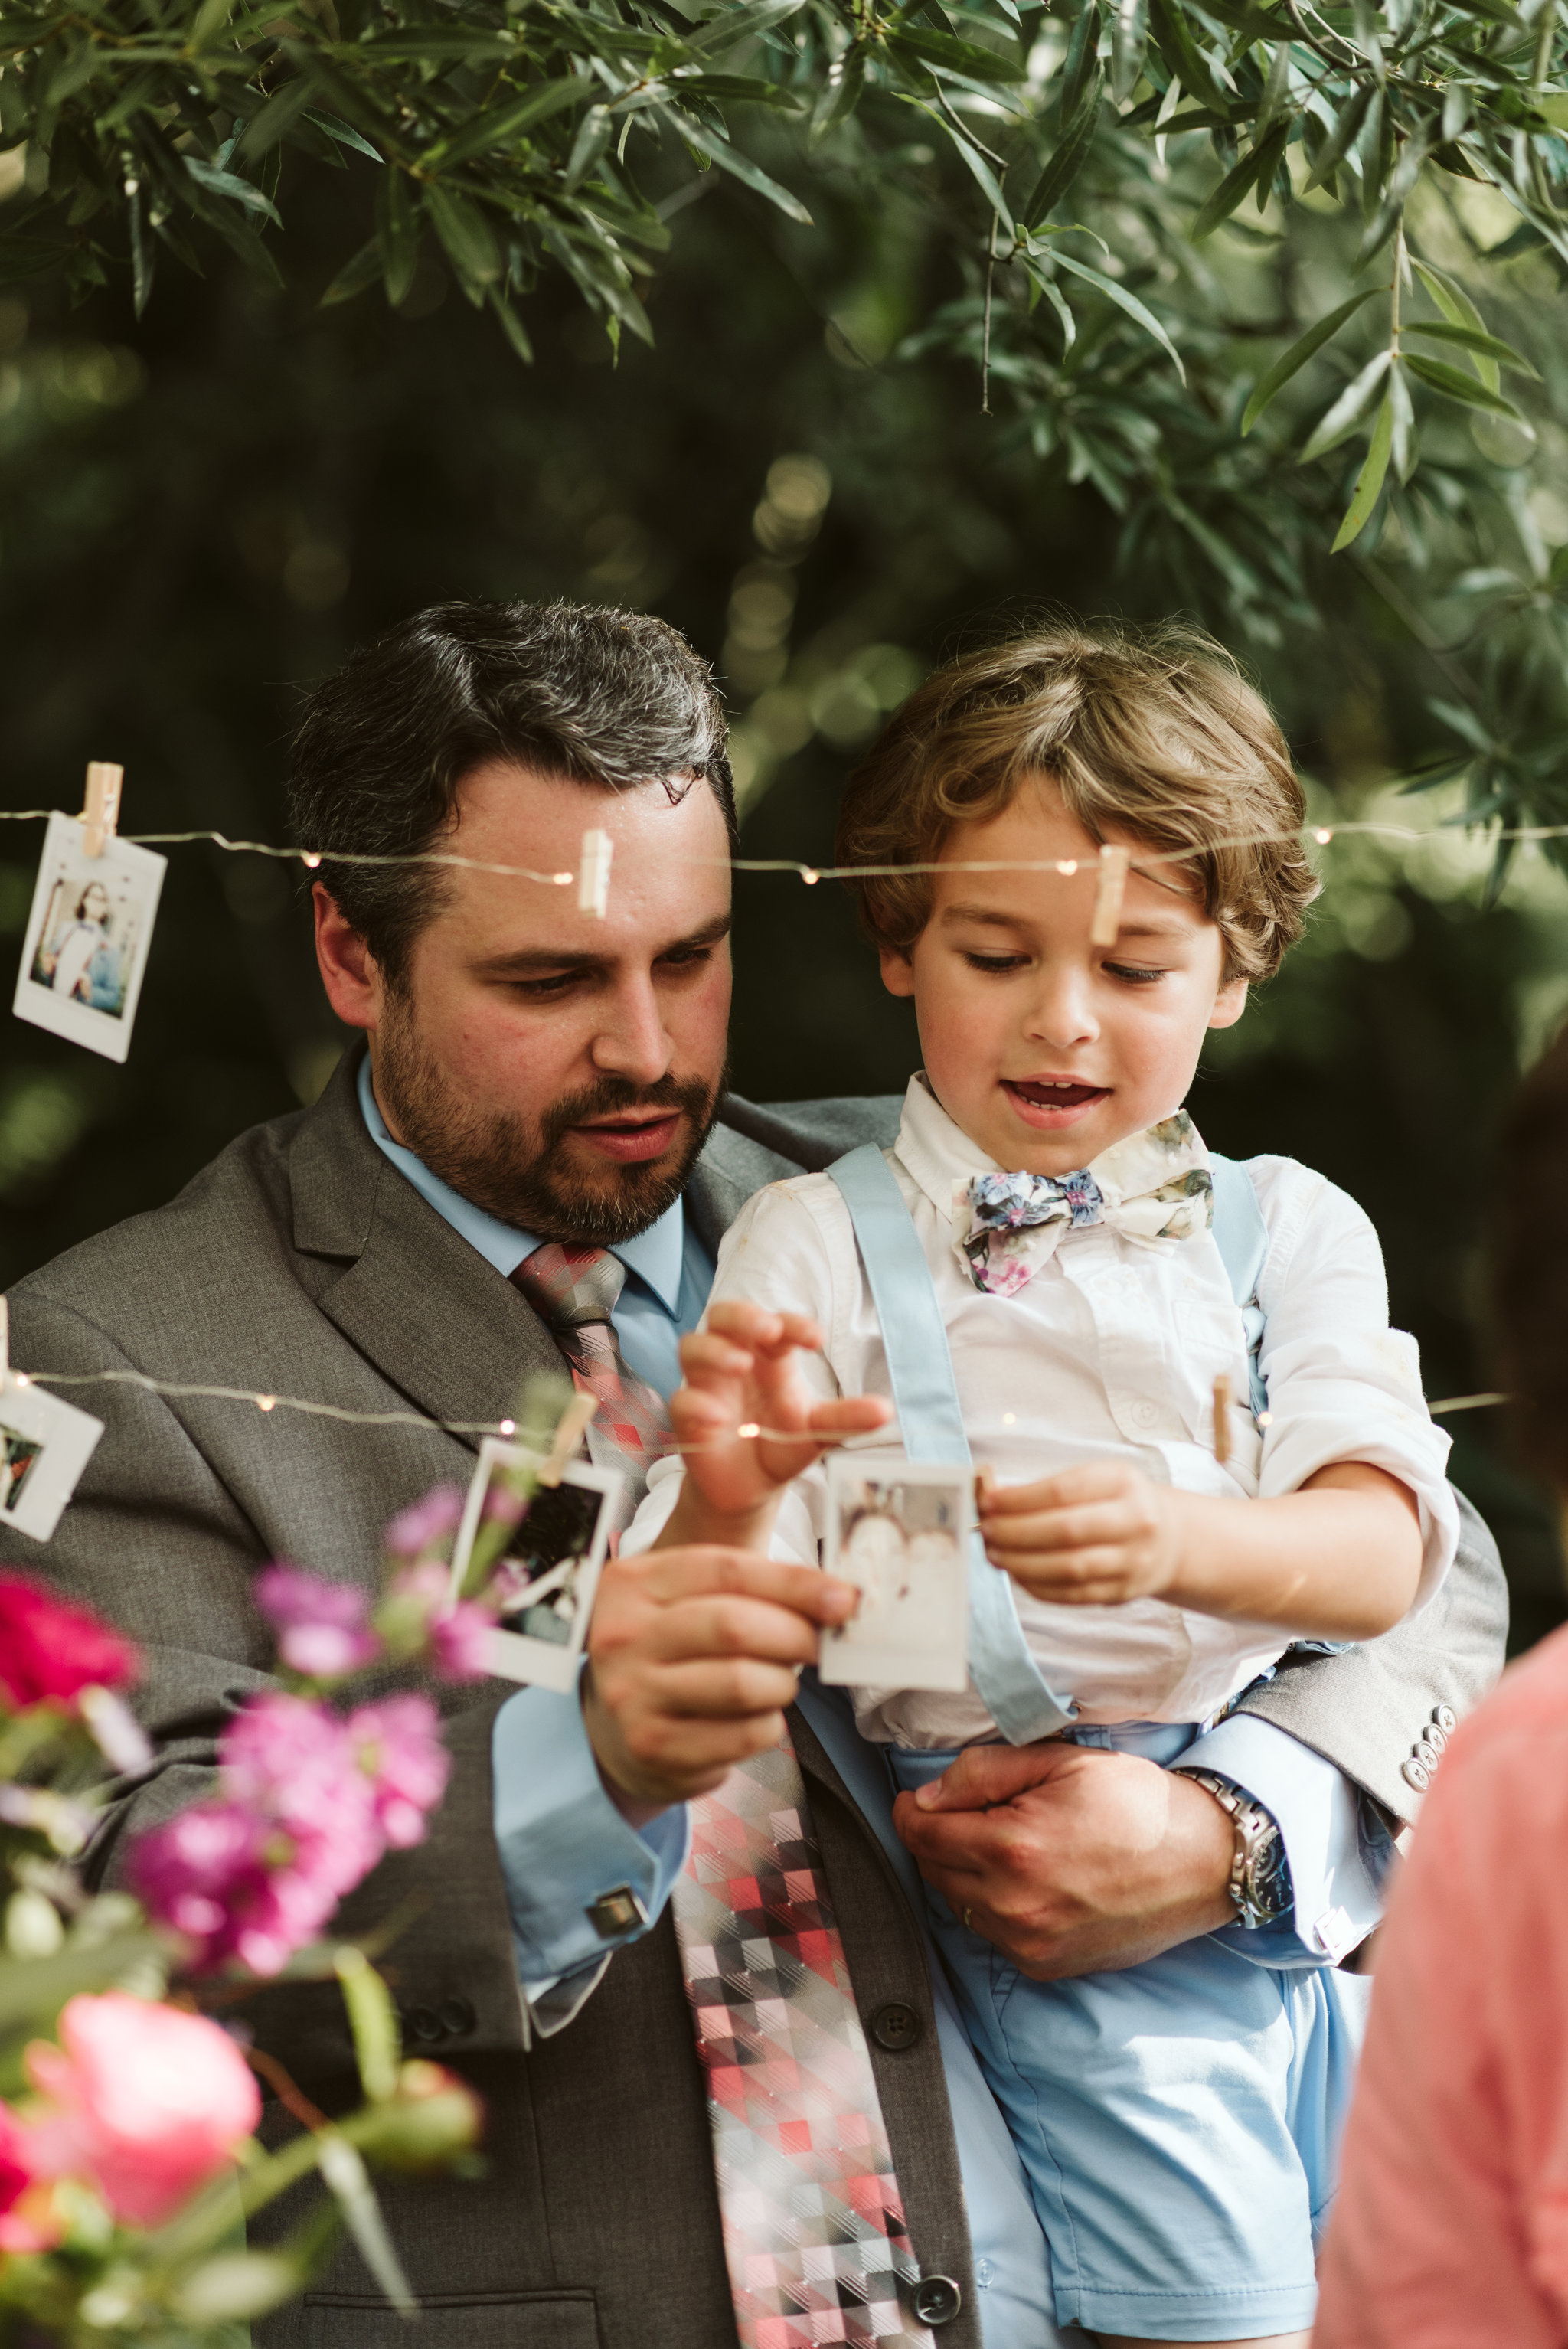 Annapolis, Quaker Wedding, Maryland Wedding Photographer, Intimate, Small Wedding, Vintage, DIY, Father and Son at Wedding Reception, Cute Photo of Family